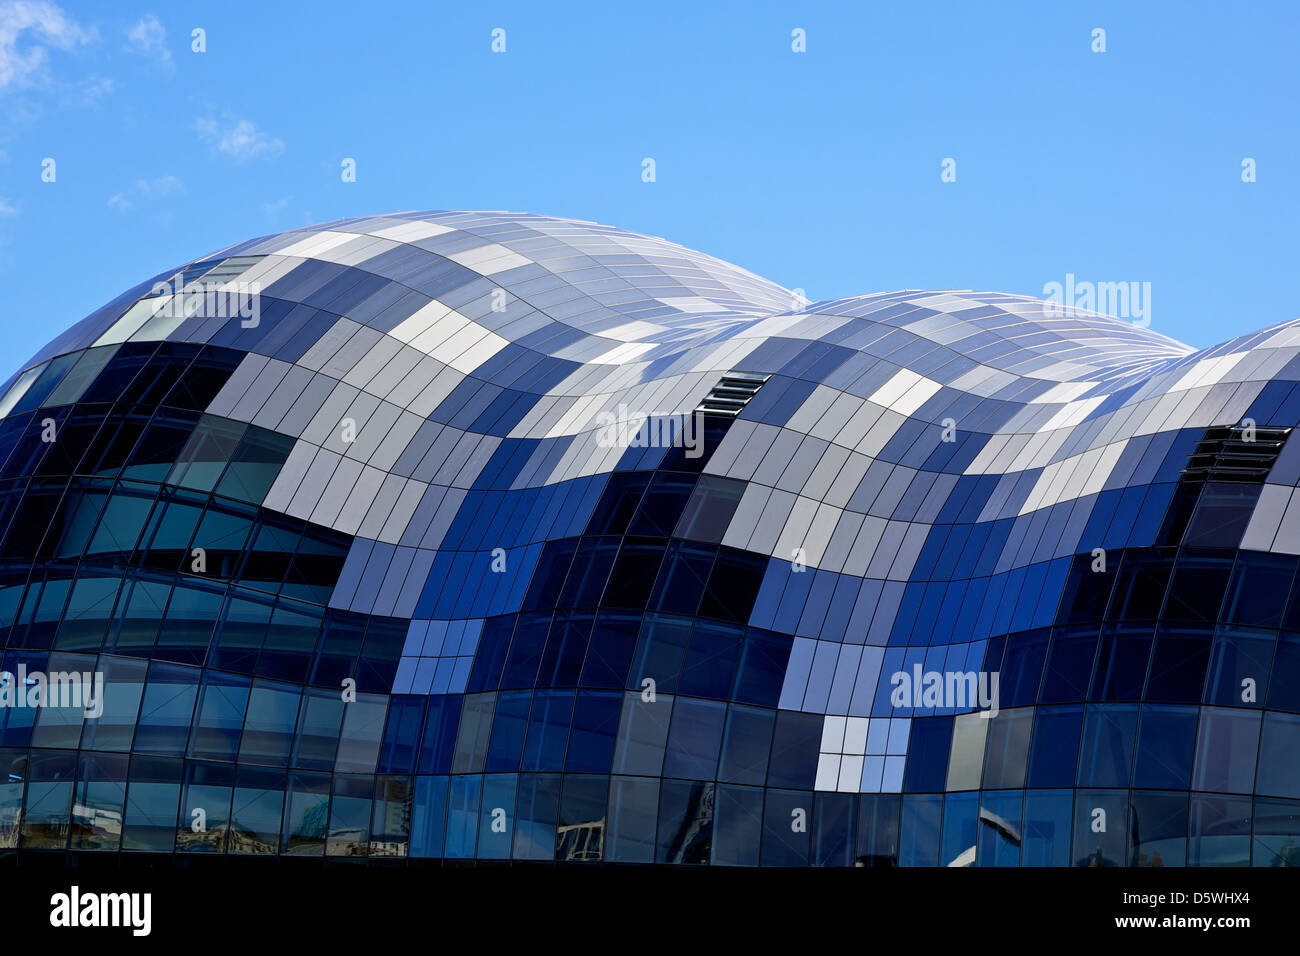 The Sage, Gateshead with the curved glass roof reflecting the blue of the sky and the white of the clouds. - Stock Image